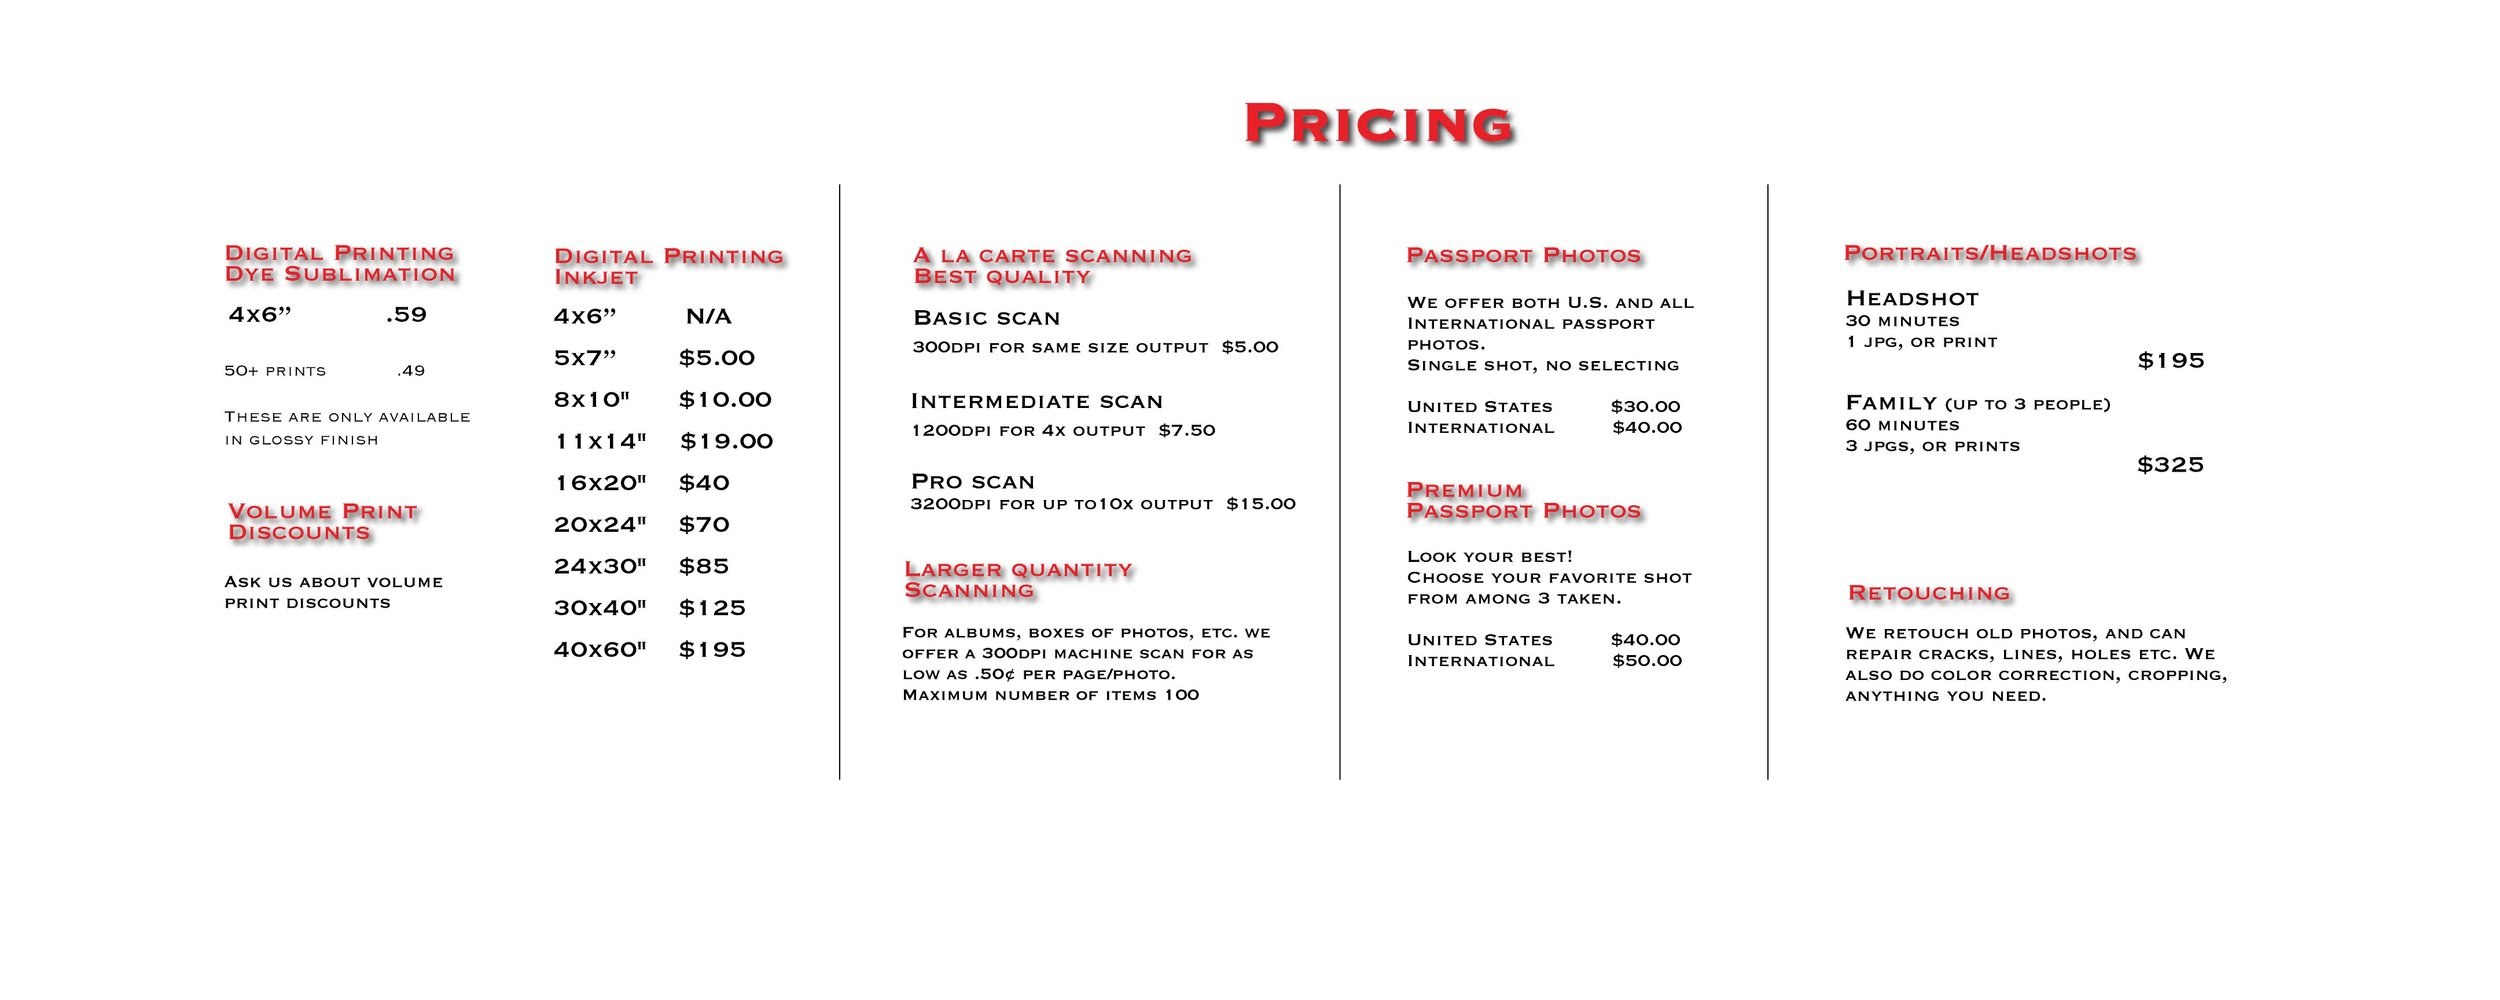 CLICK ON PRICES TO ENLARGE